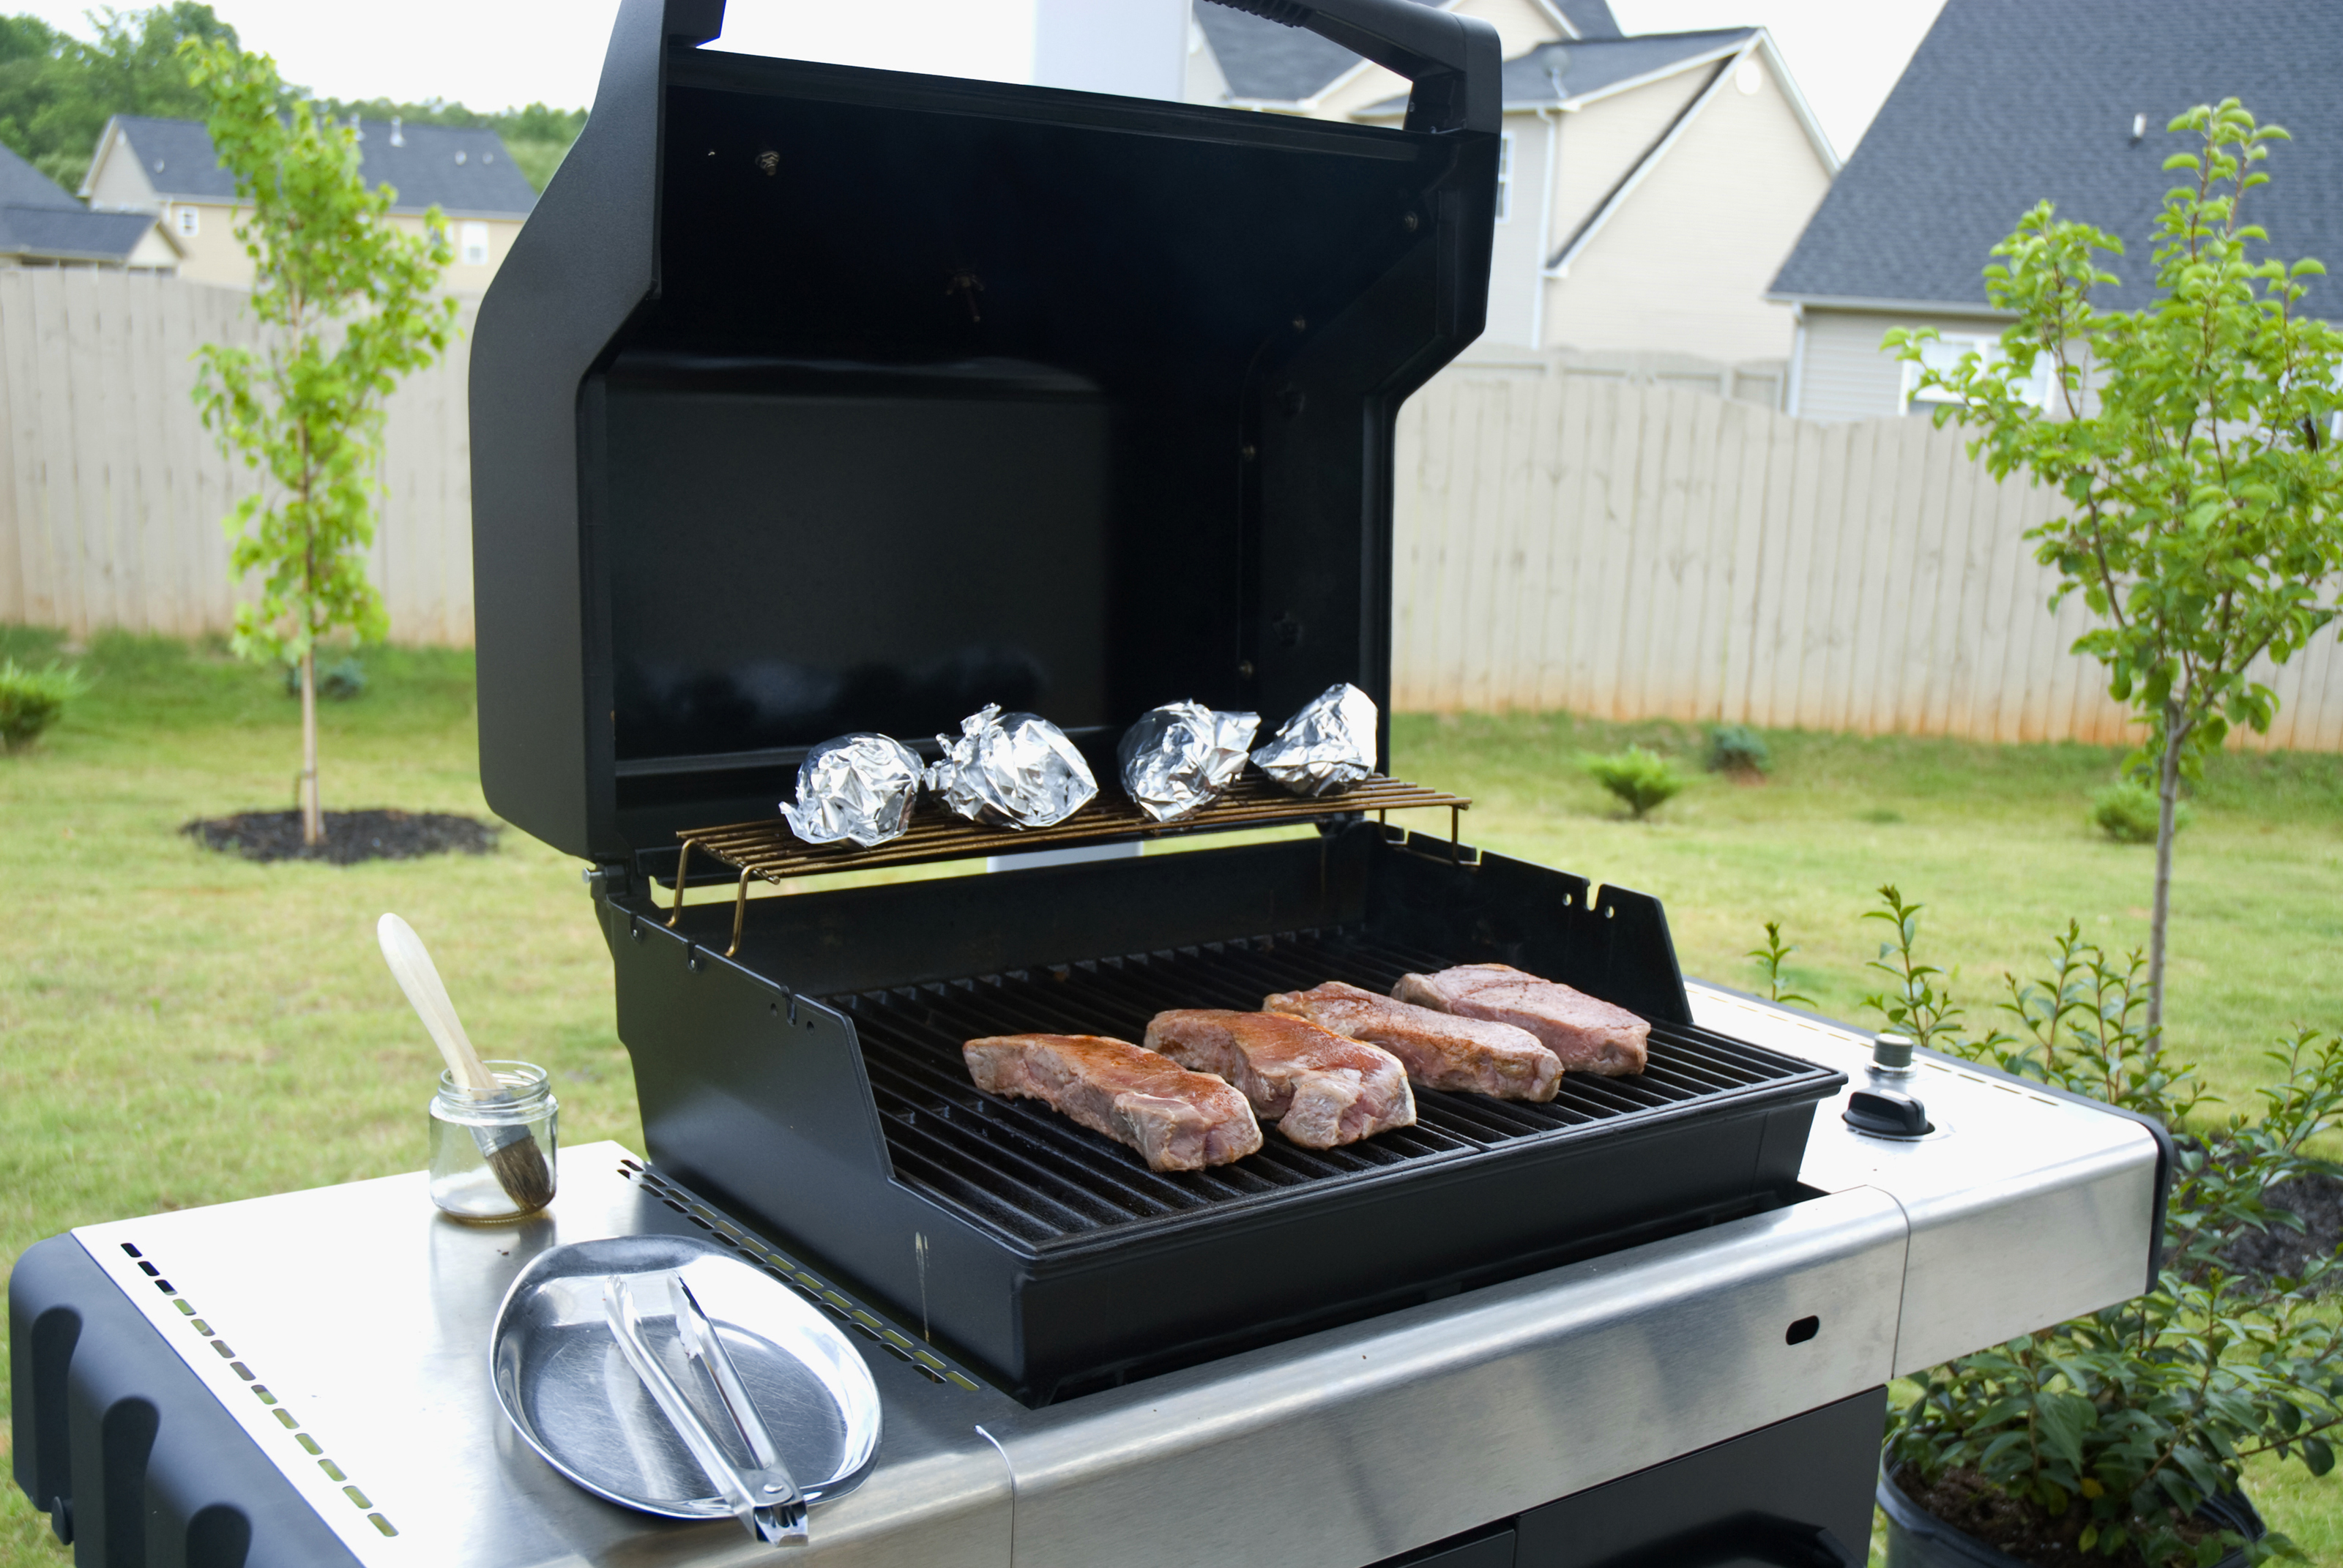 Gas Grill Regulator Troubleshooting | Home Guides | SF Gate